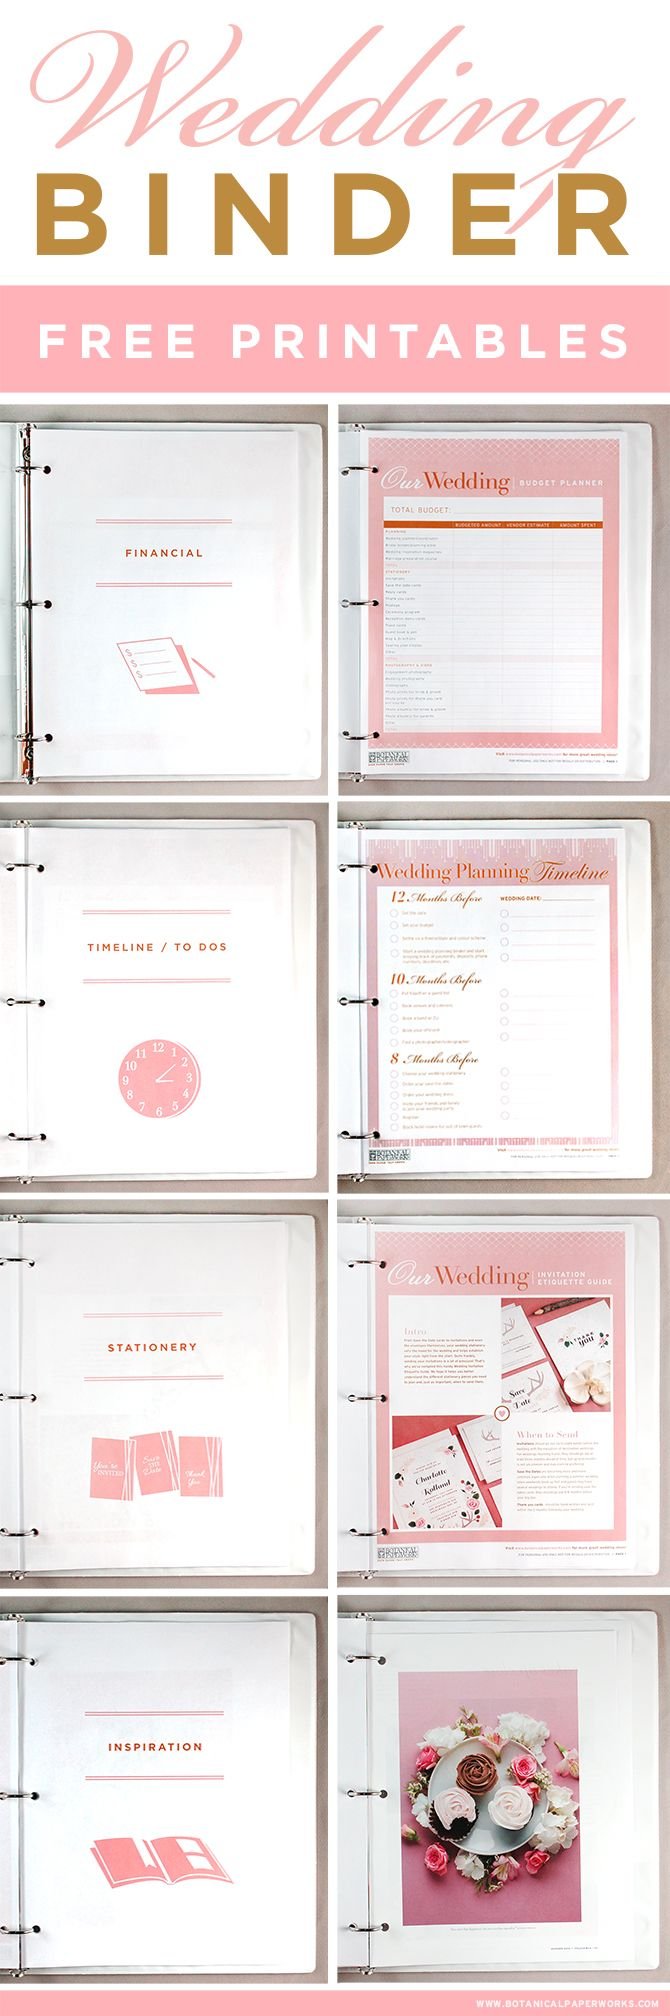 graphic about Free Printable Wedding Planner Workbook referred to as Naima (tolerante123) upon Pinterest